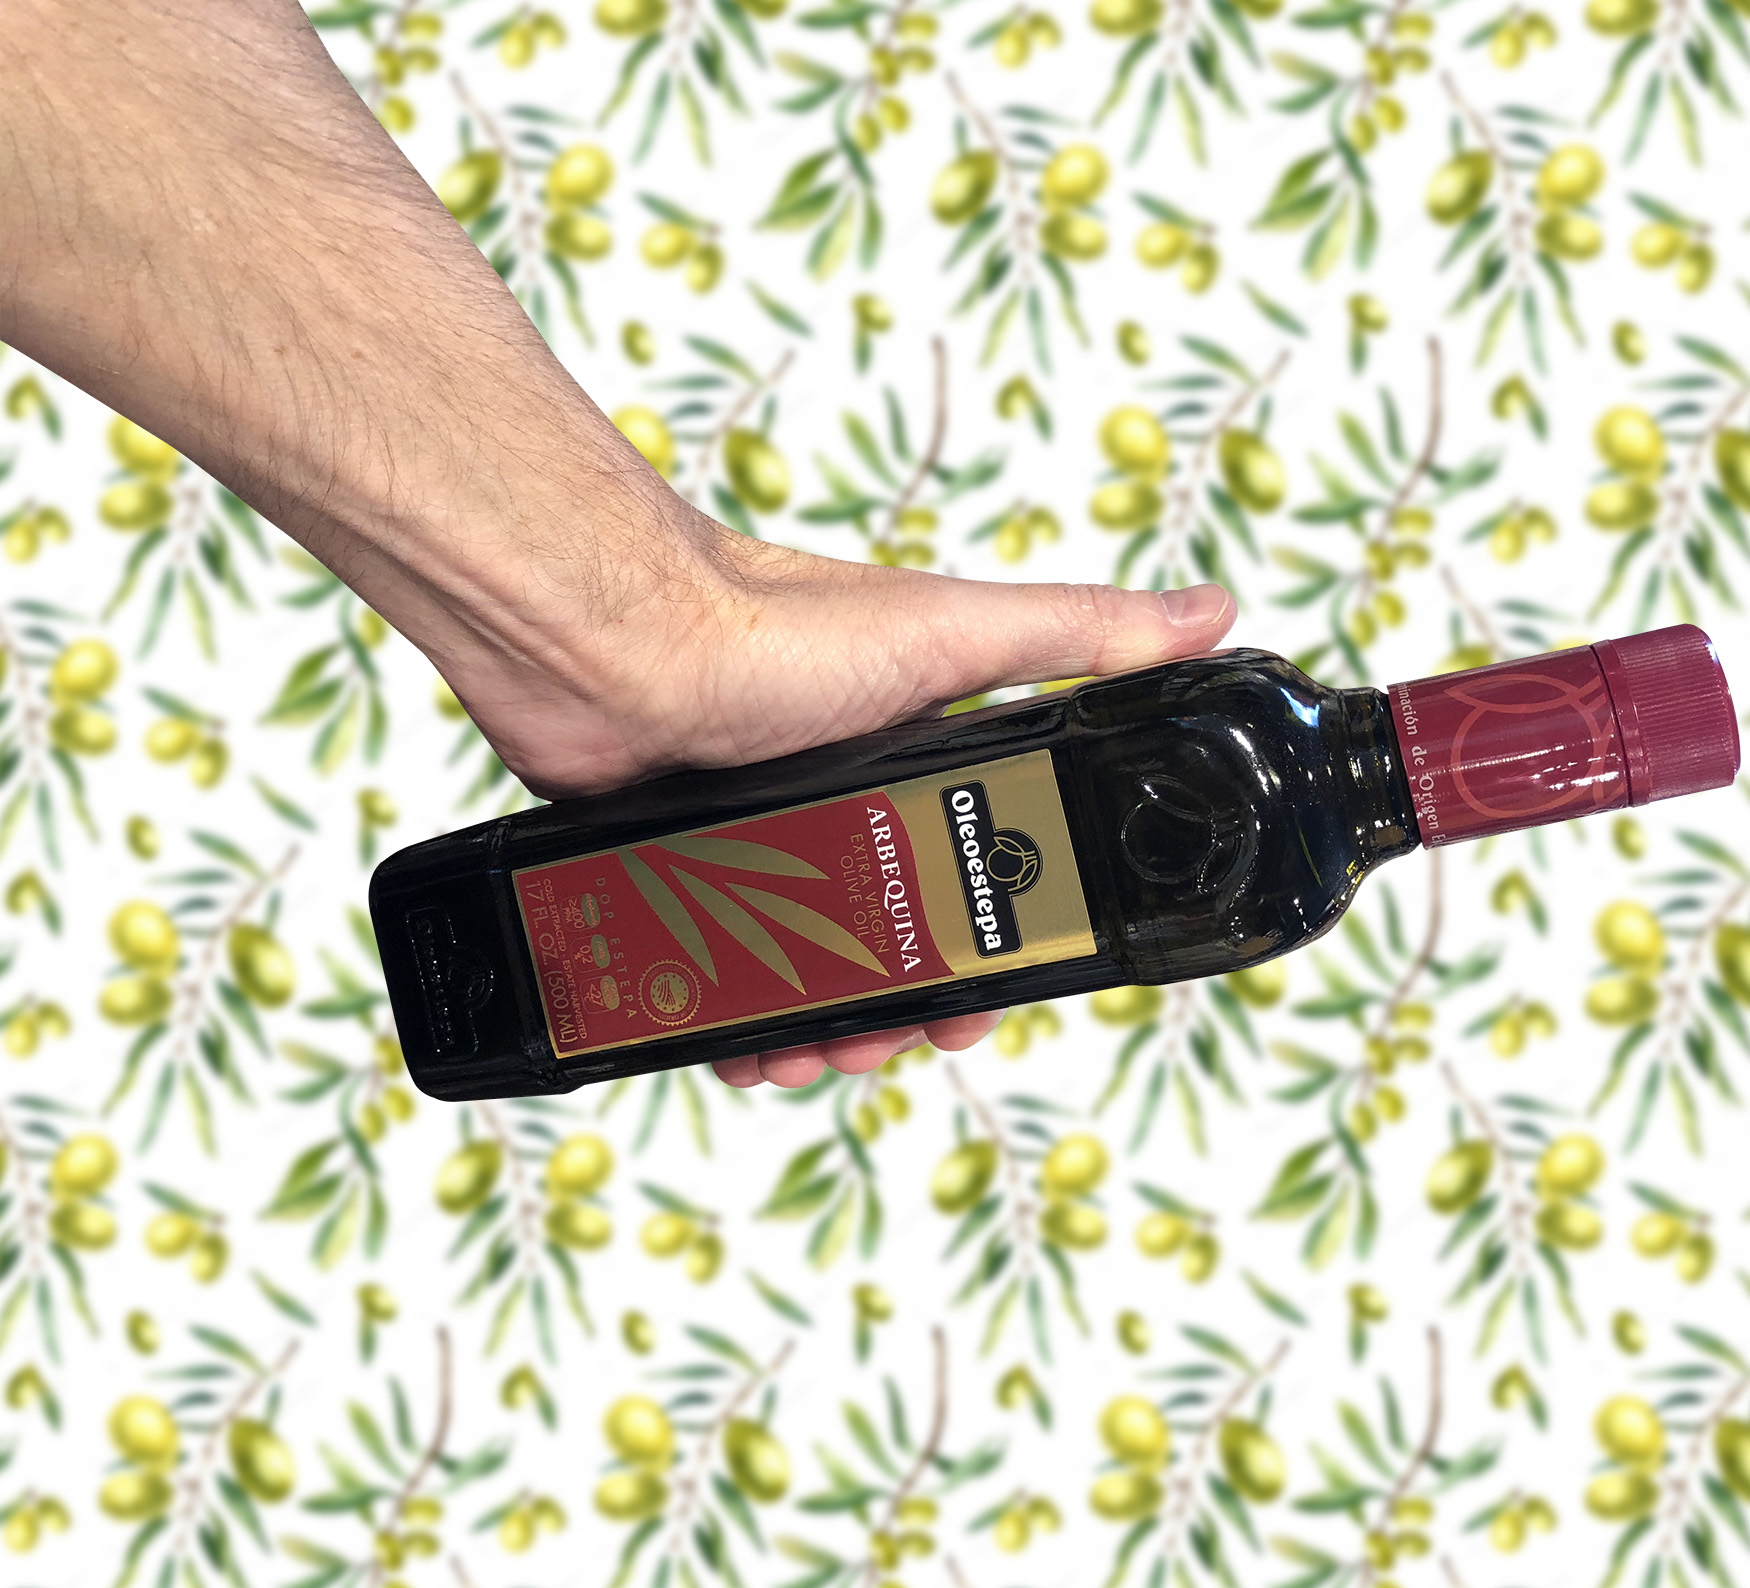 We rolled out our best wallpaper for this photo. Get this bottle of 100% Arbequina olive oil (straight outta Spain) for $1 when you sign up for our online store.  Get that olive oil